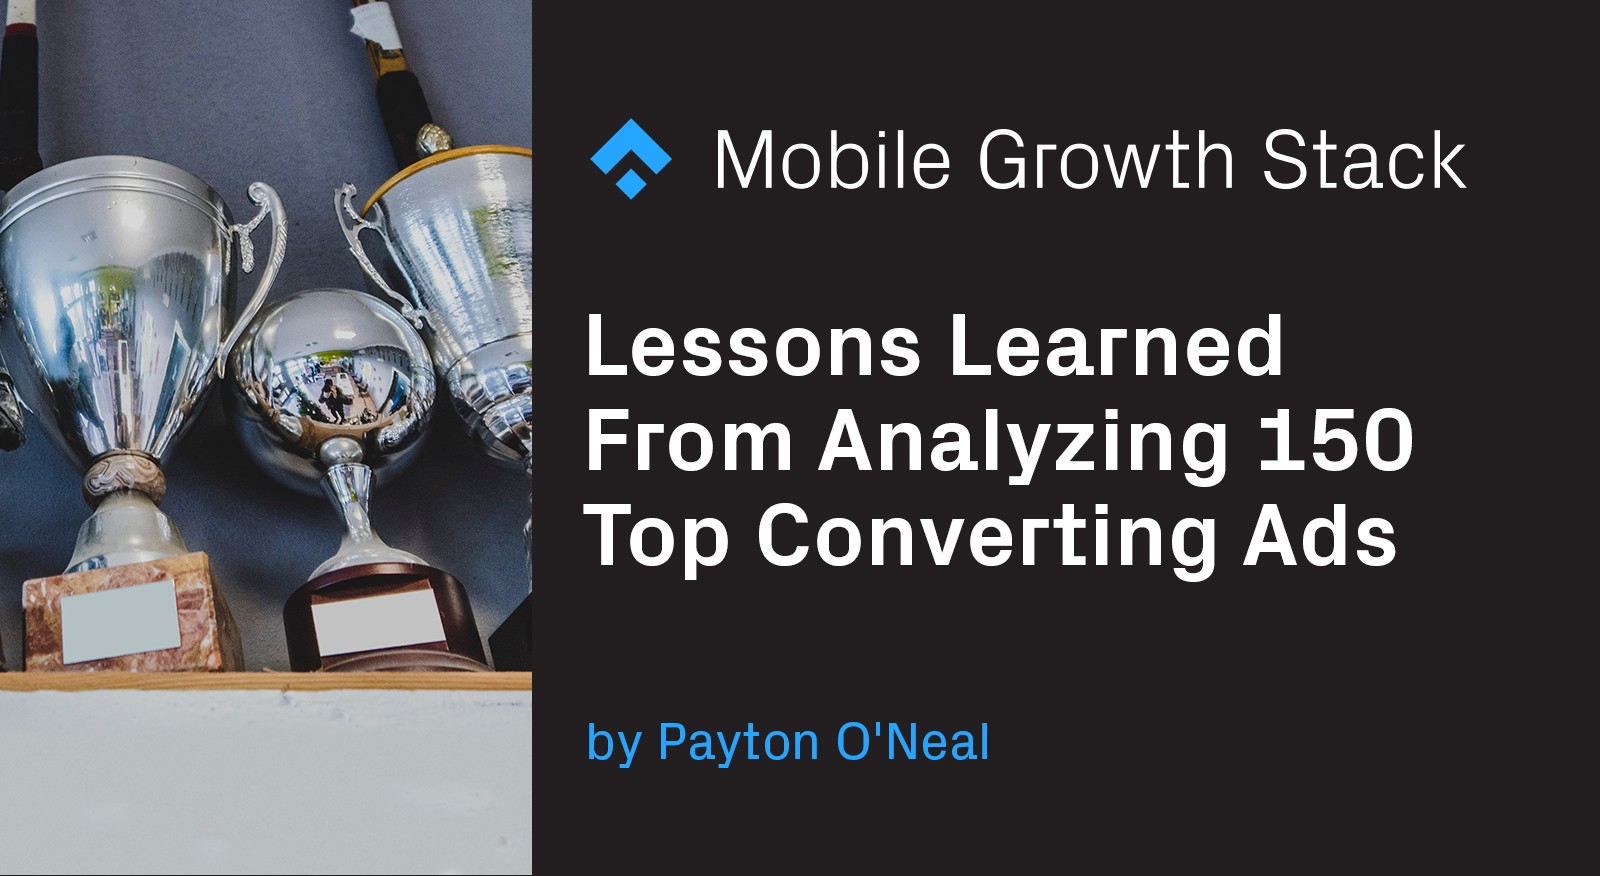 Lessons Learned From Analyzing 150 Top Converting Ads